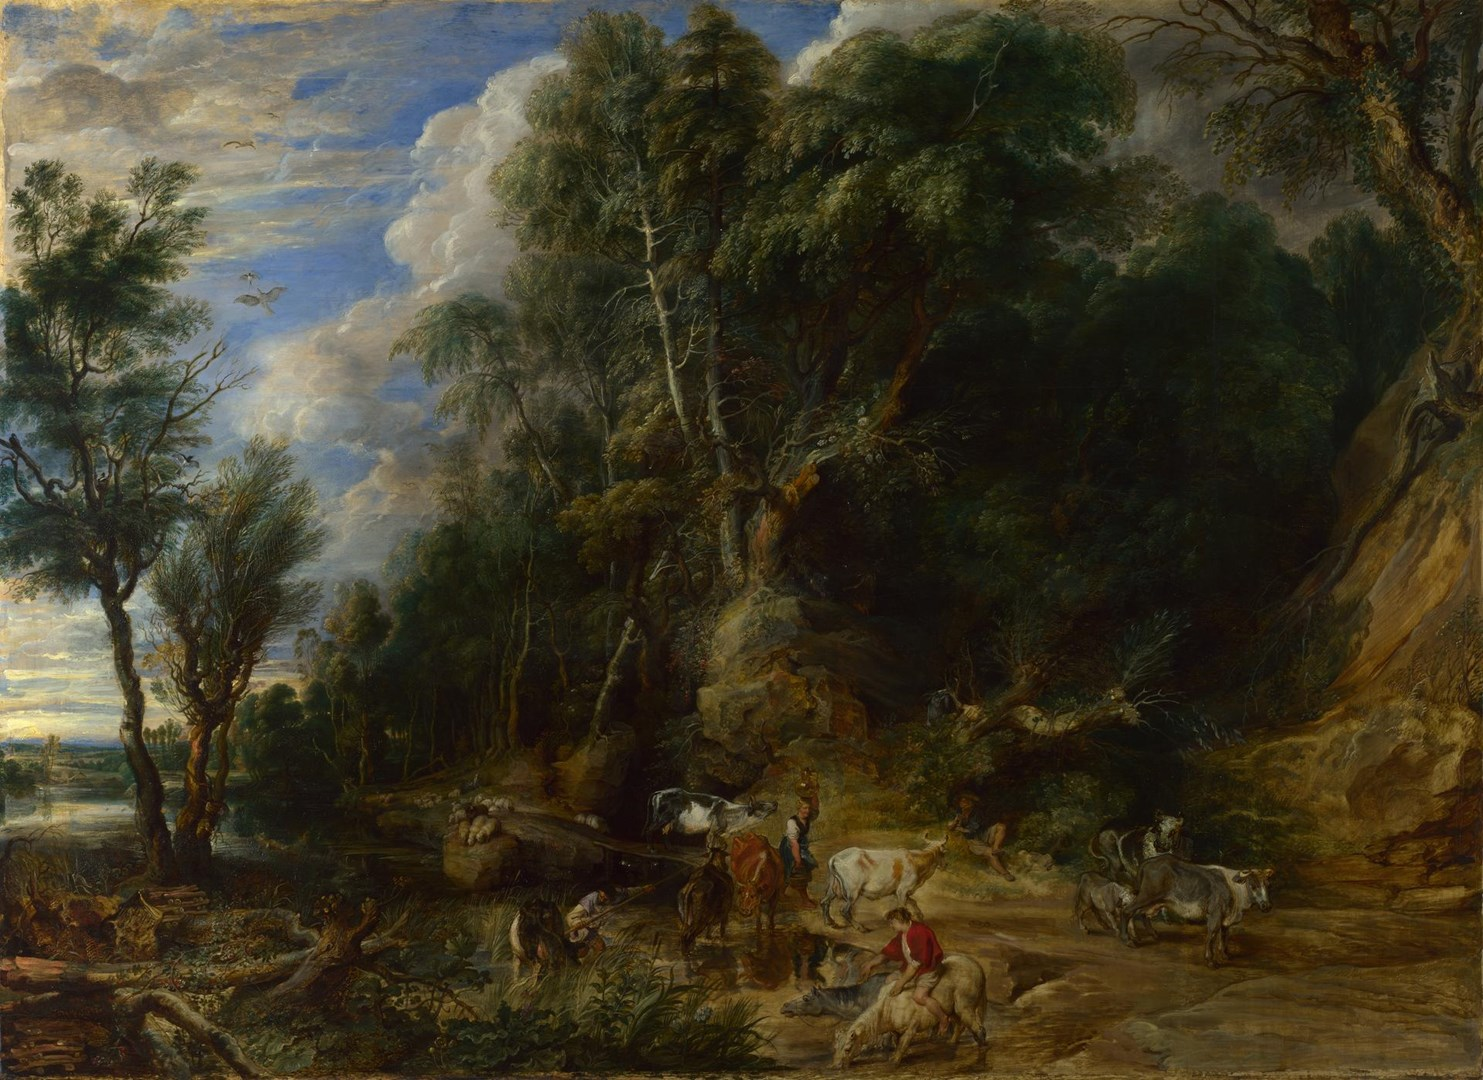 The Watering Place by Peter Paul Rubens